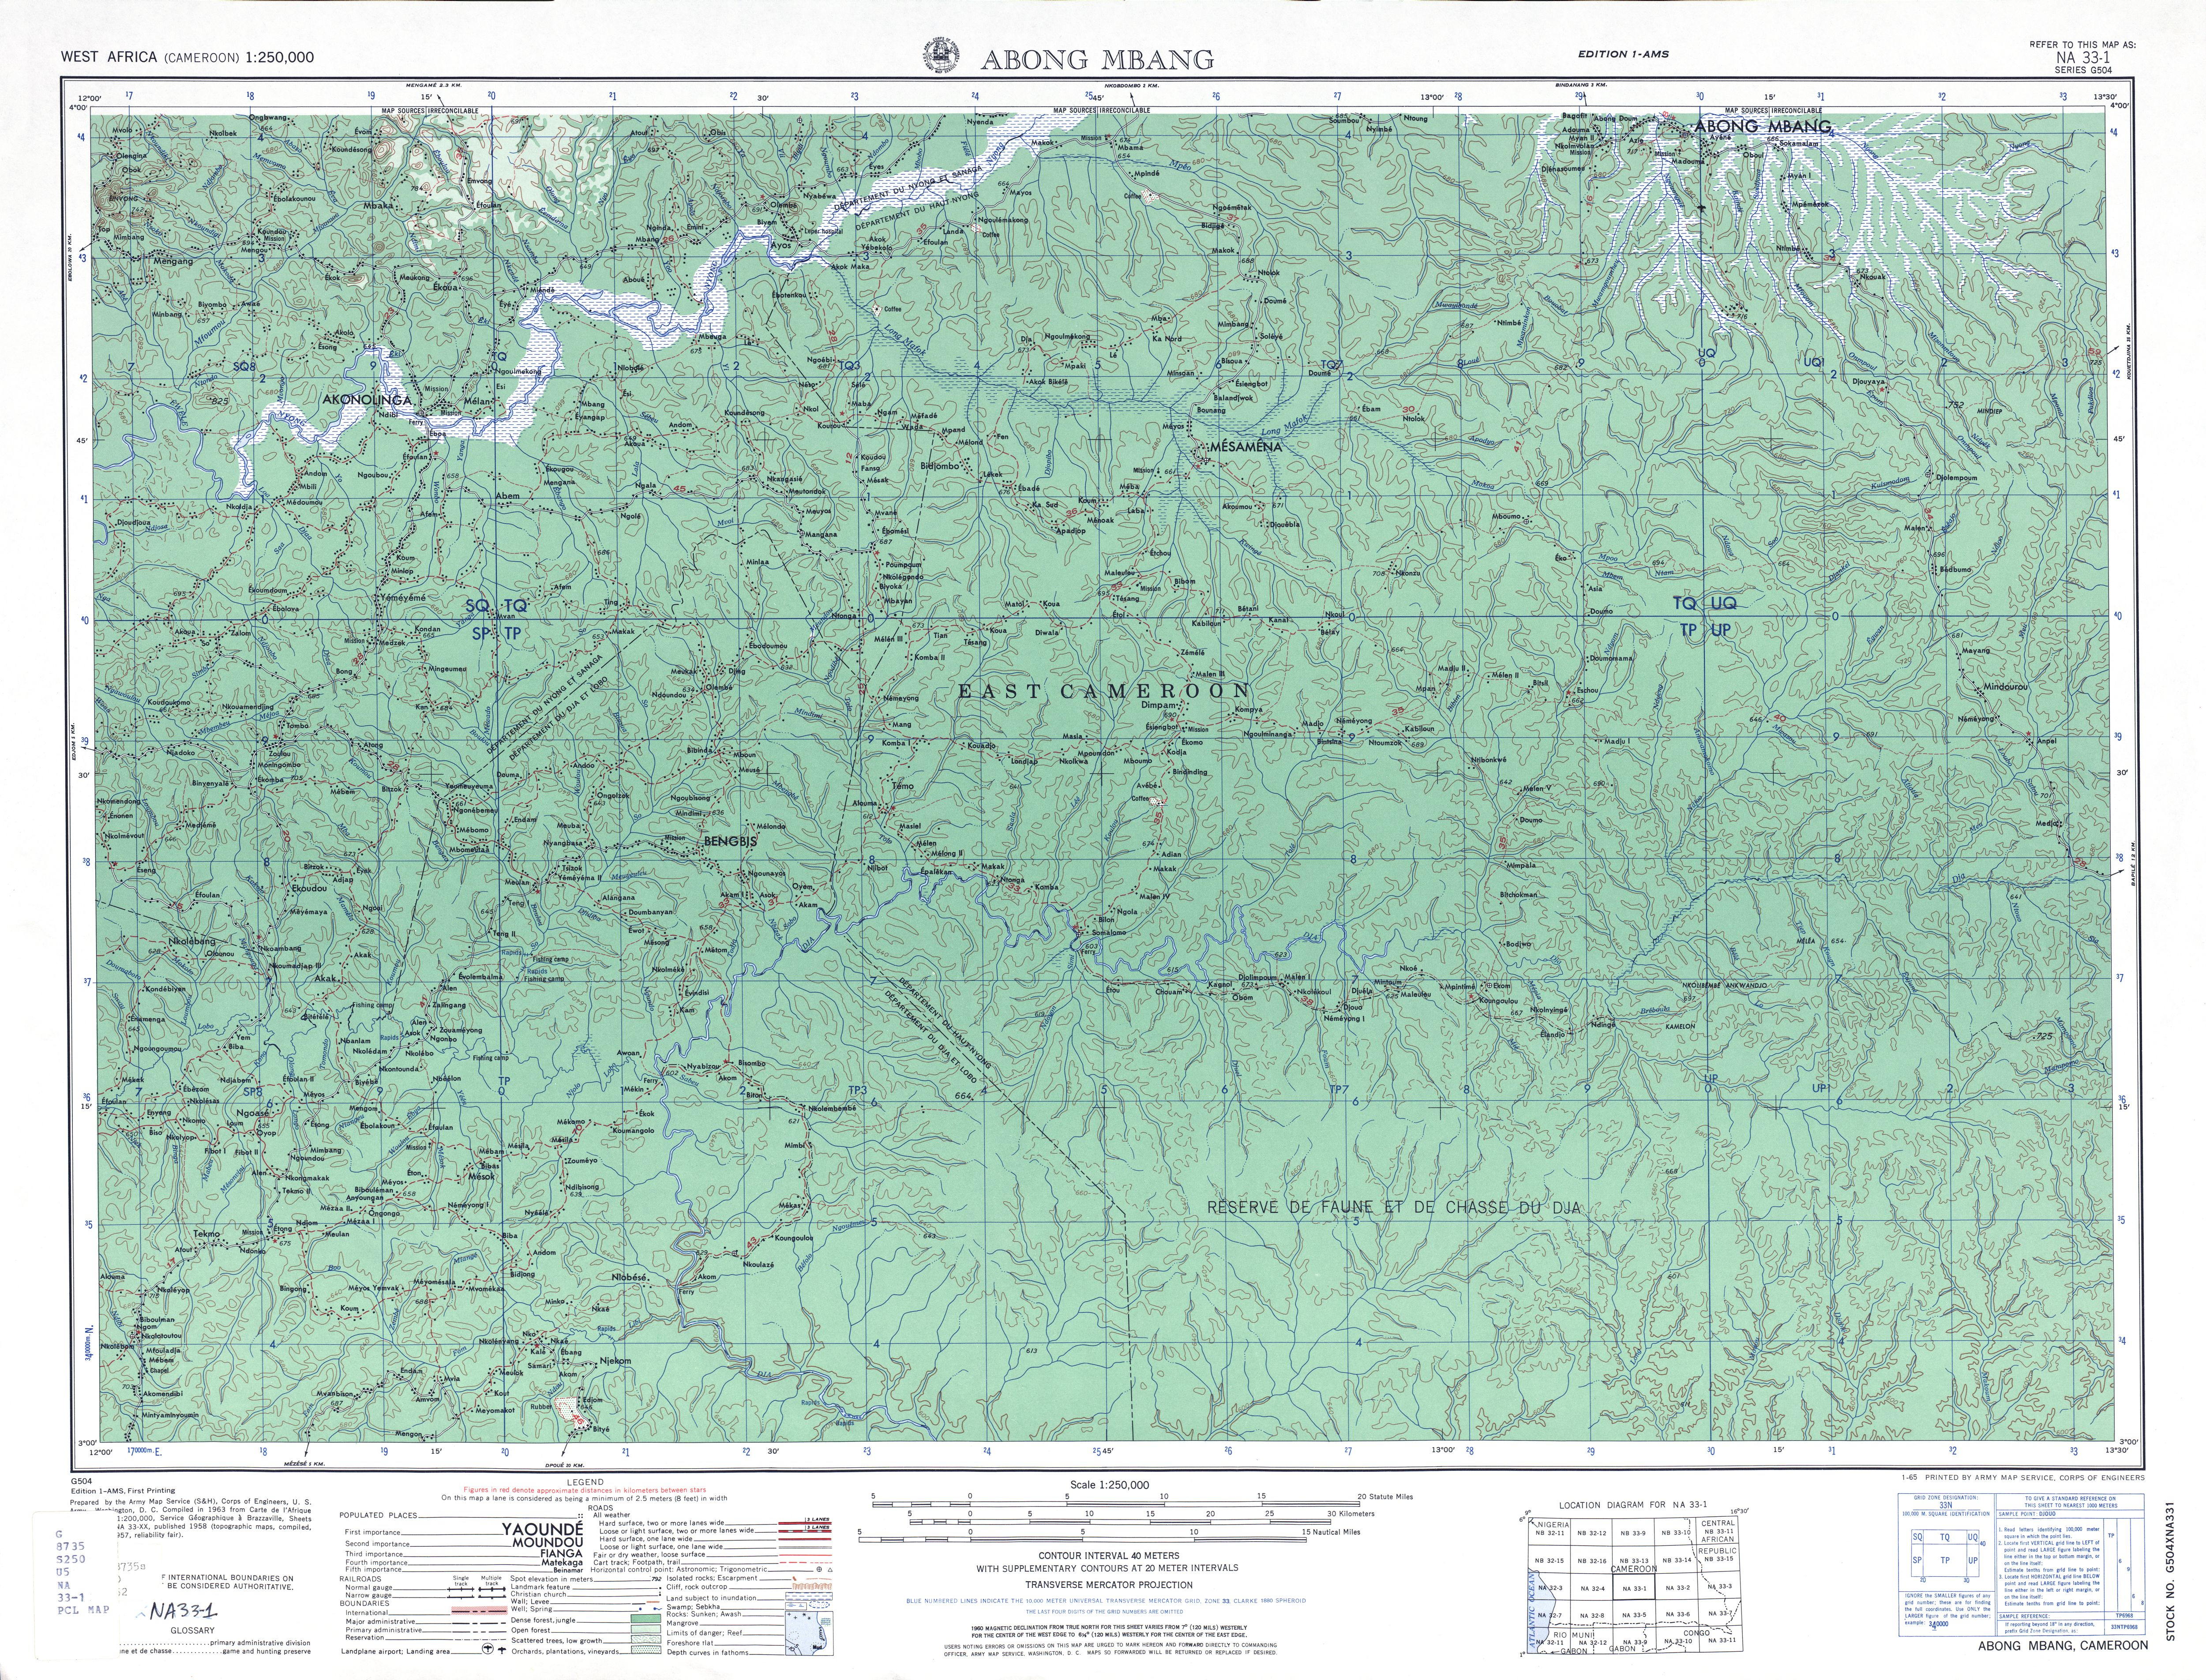 us army maps.kmz